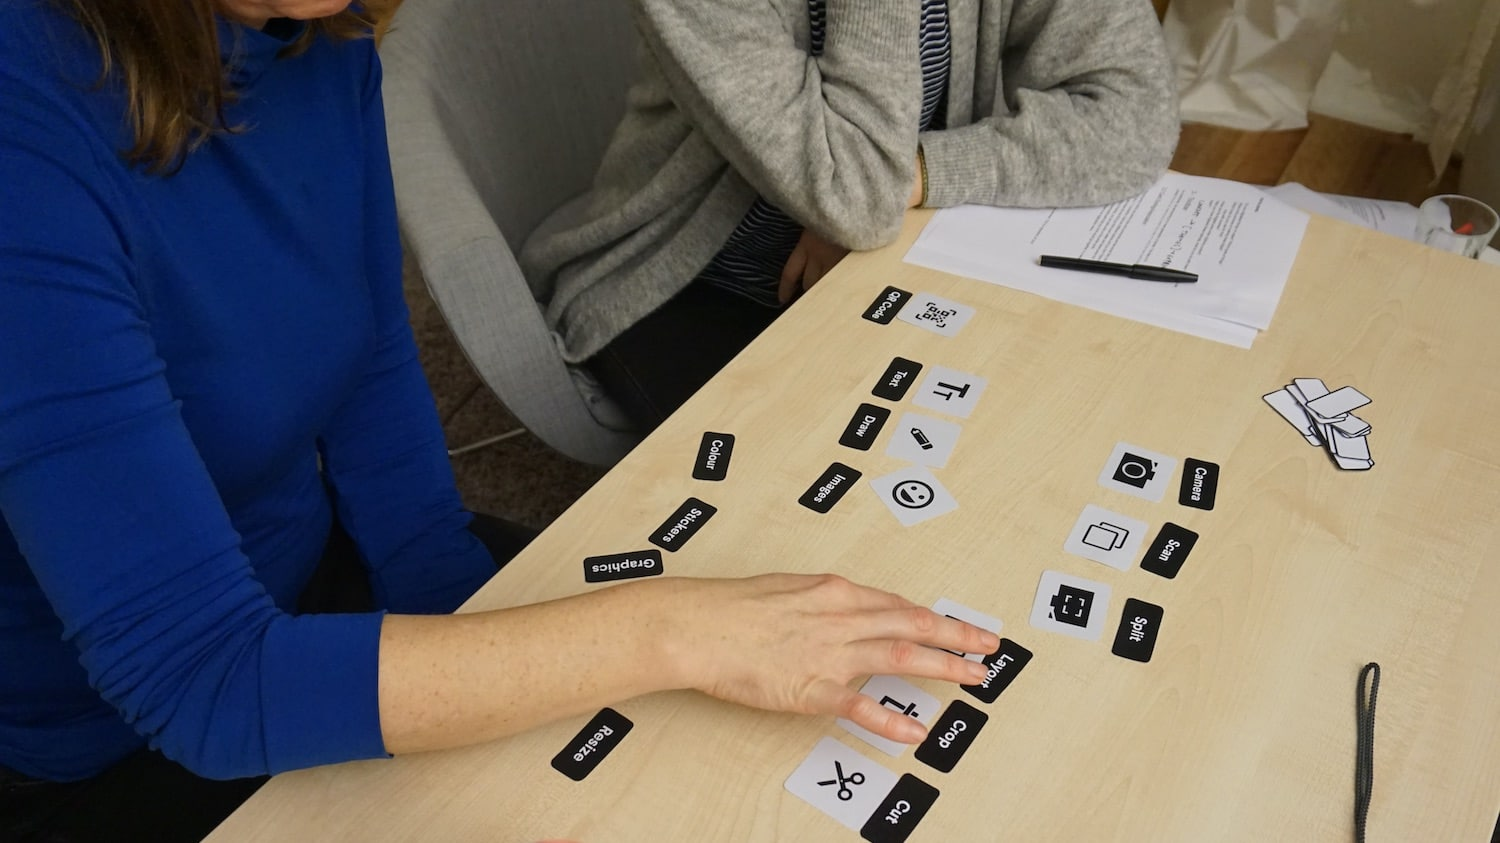 a participant during a usability test conducting a card sorting exercise